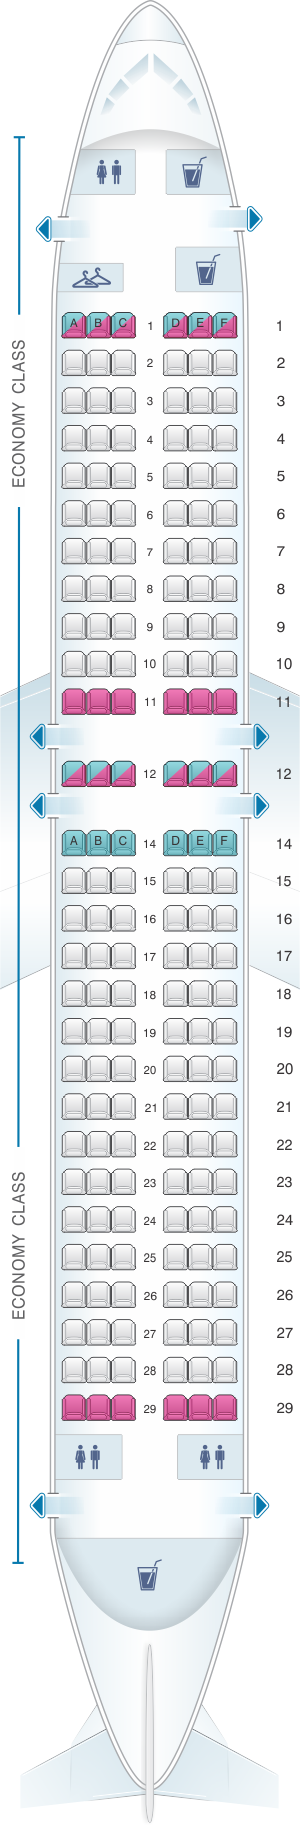 Seat map for Blue Panorama Boeing B737 400